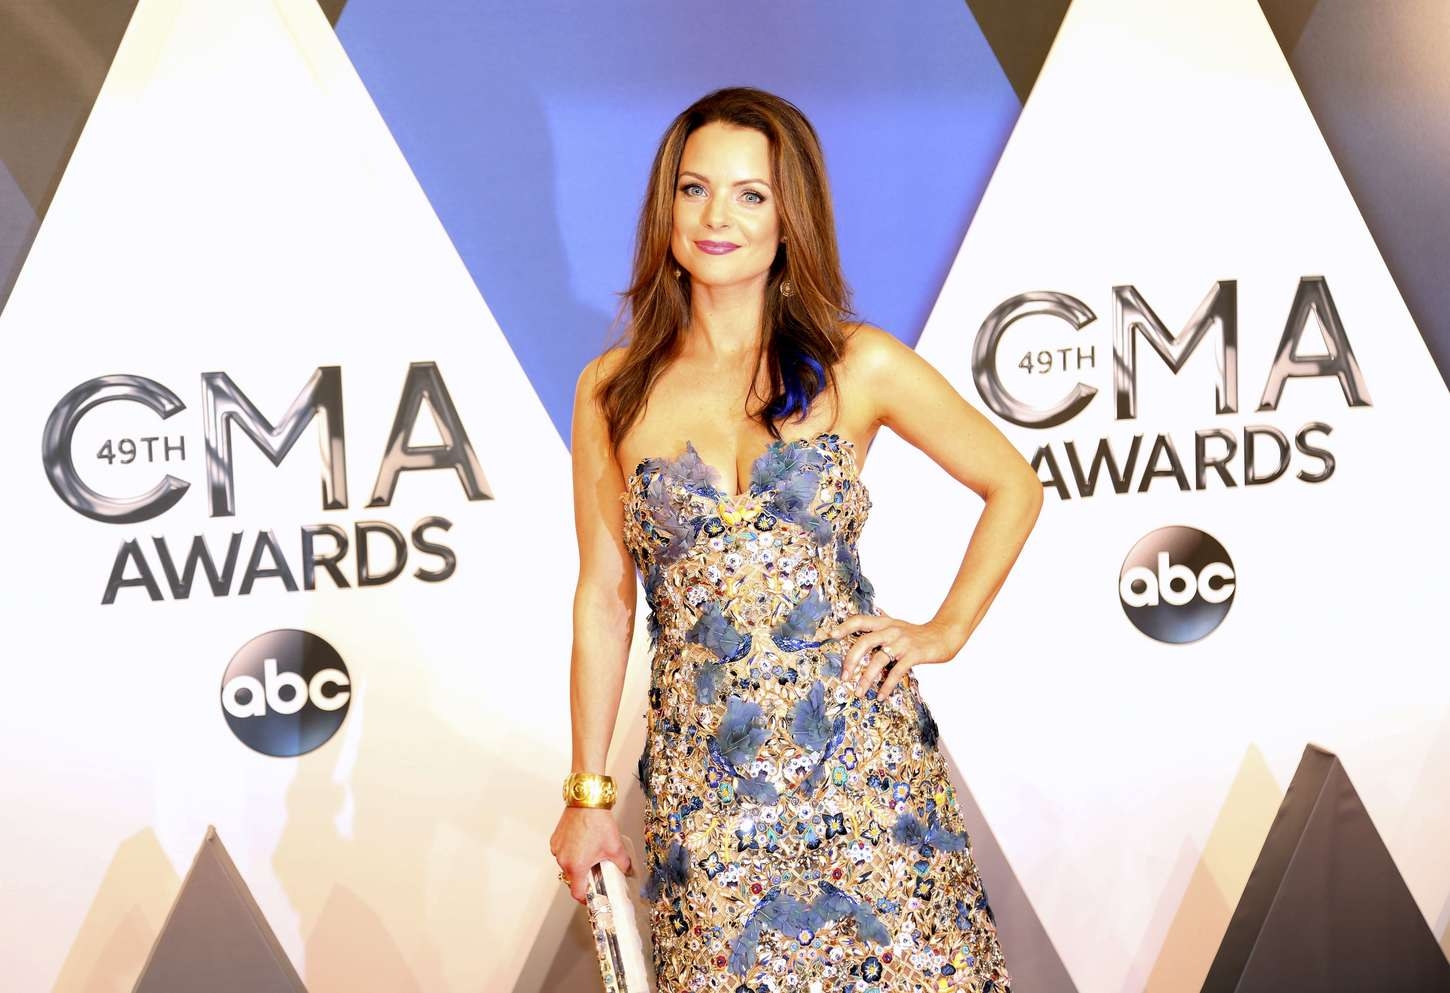 Kimberly Williams-Paisley Annual CMA Awards in Nashville